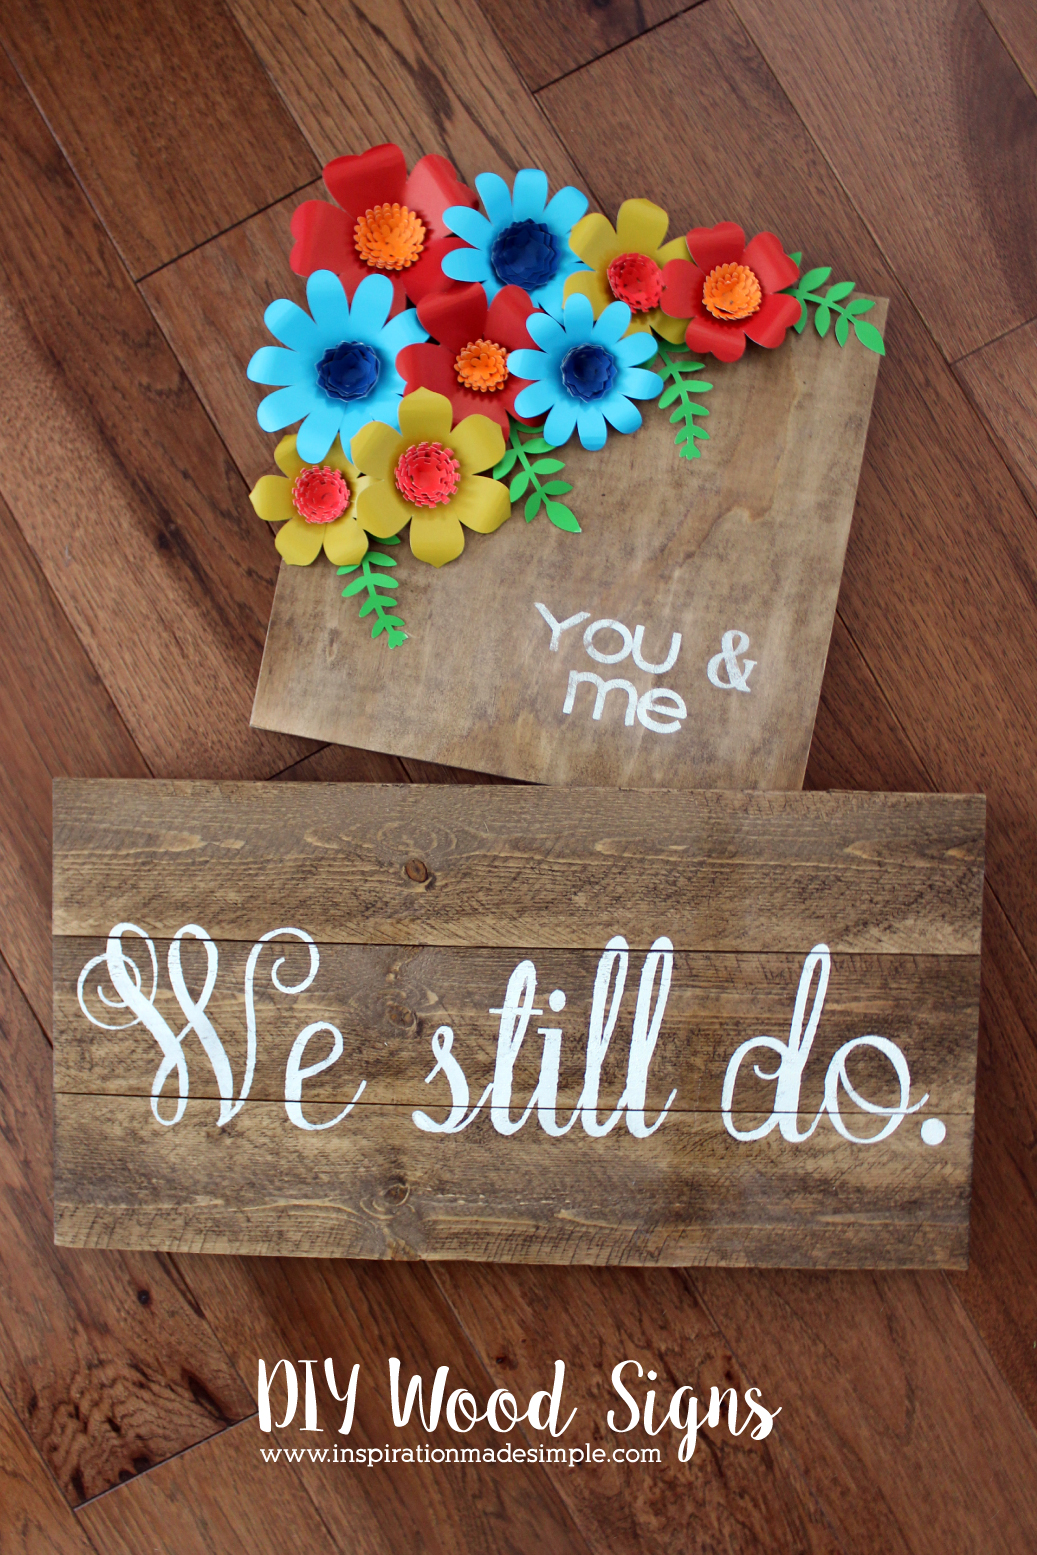 Amazing DIY Wood Signs - Resin Crafts